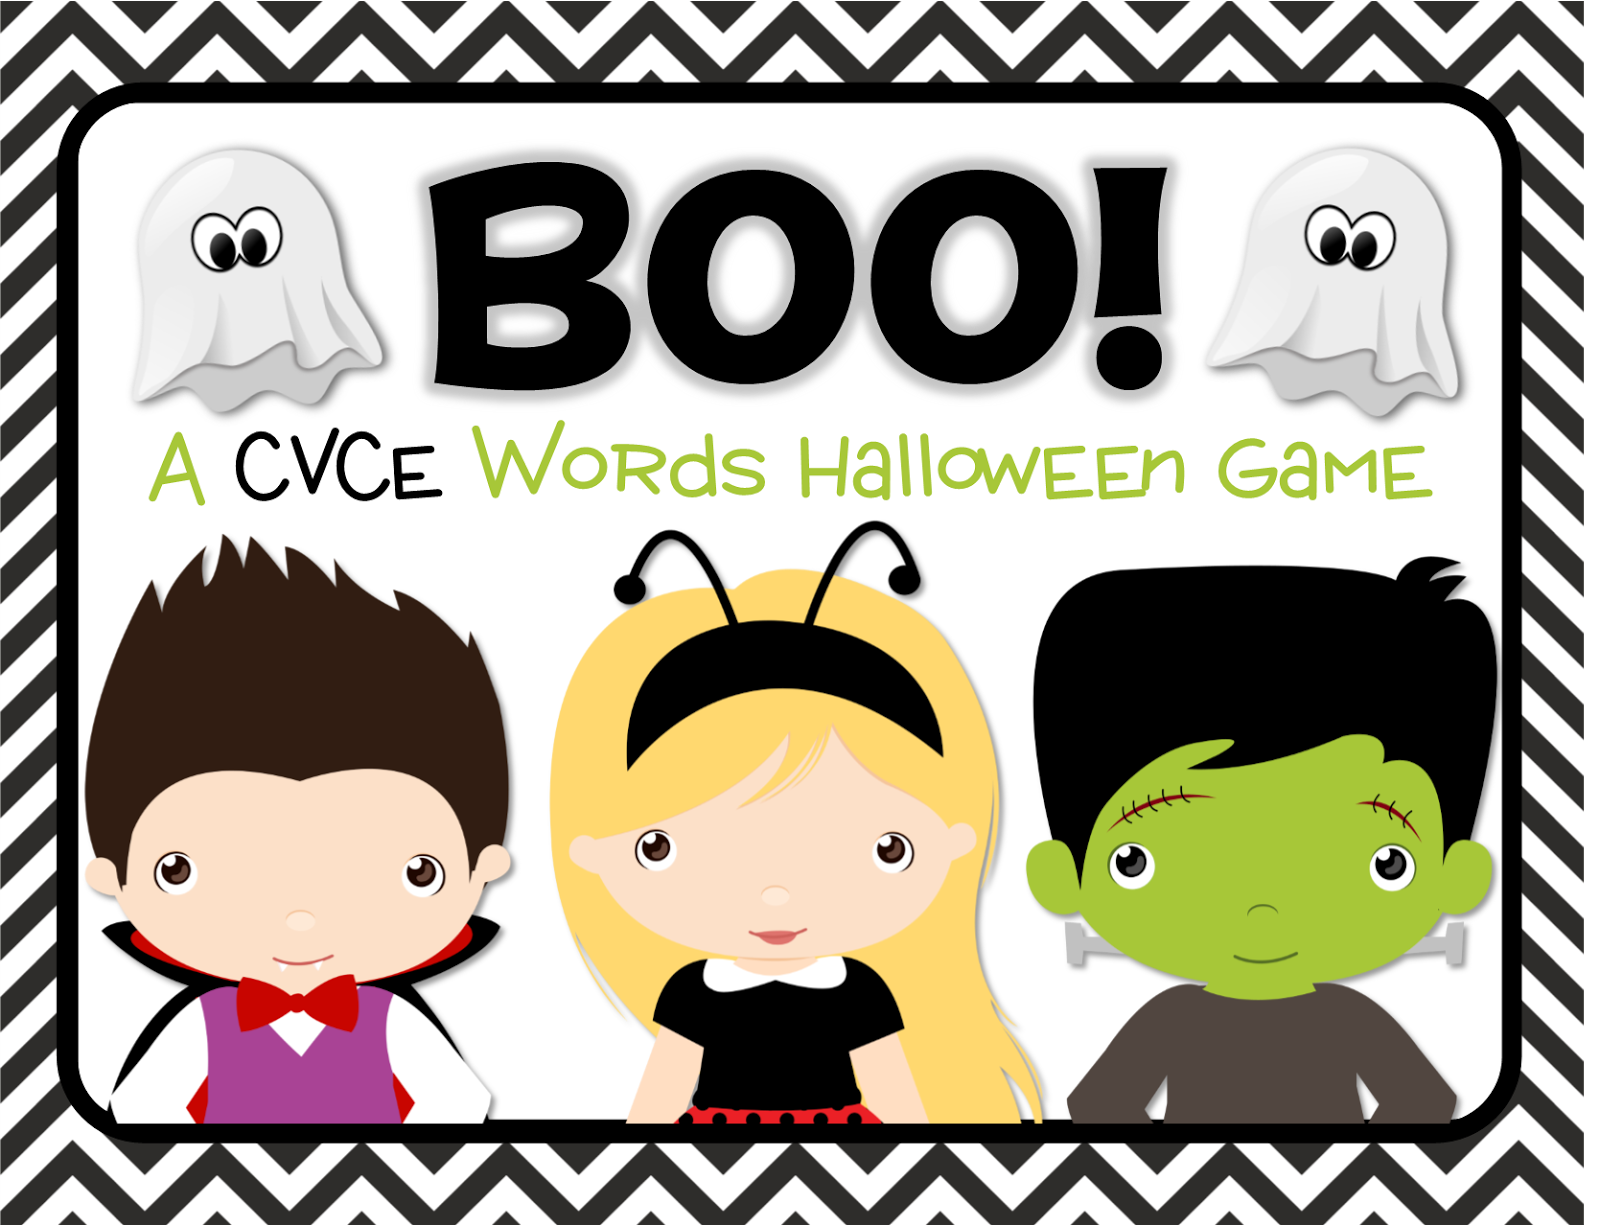 halloween halloween sight words freebie and games for sight words cvc words and cvce words - Halloween Word Game